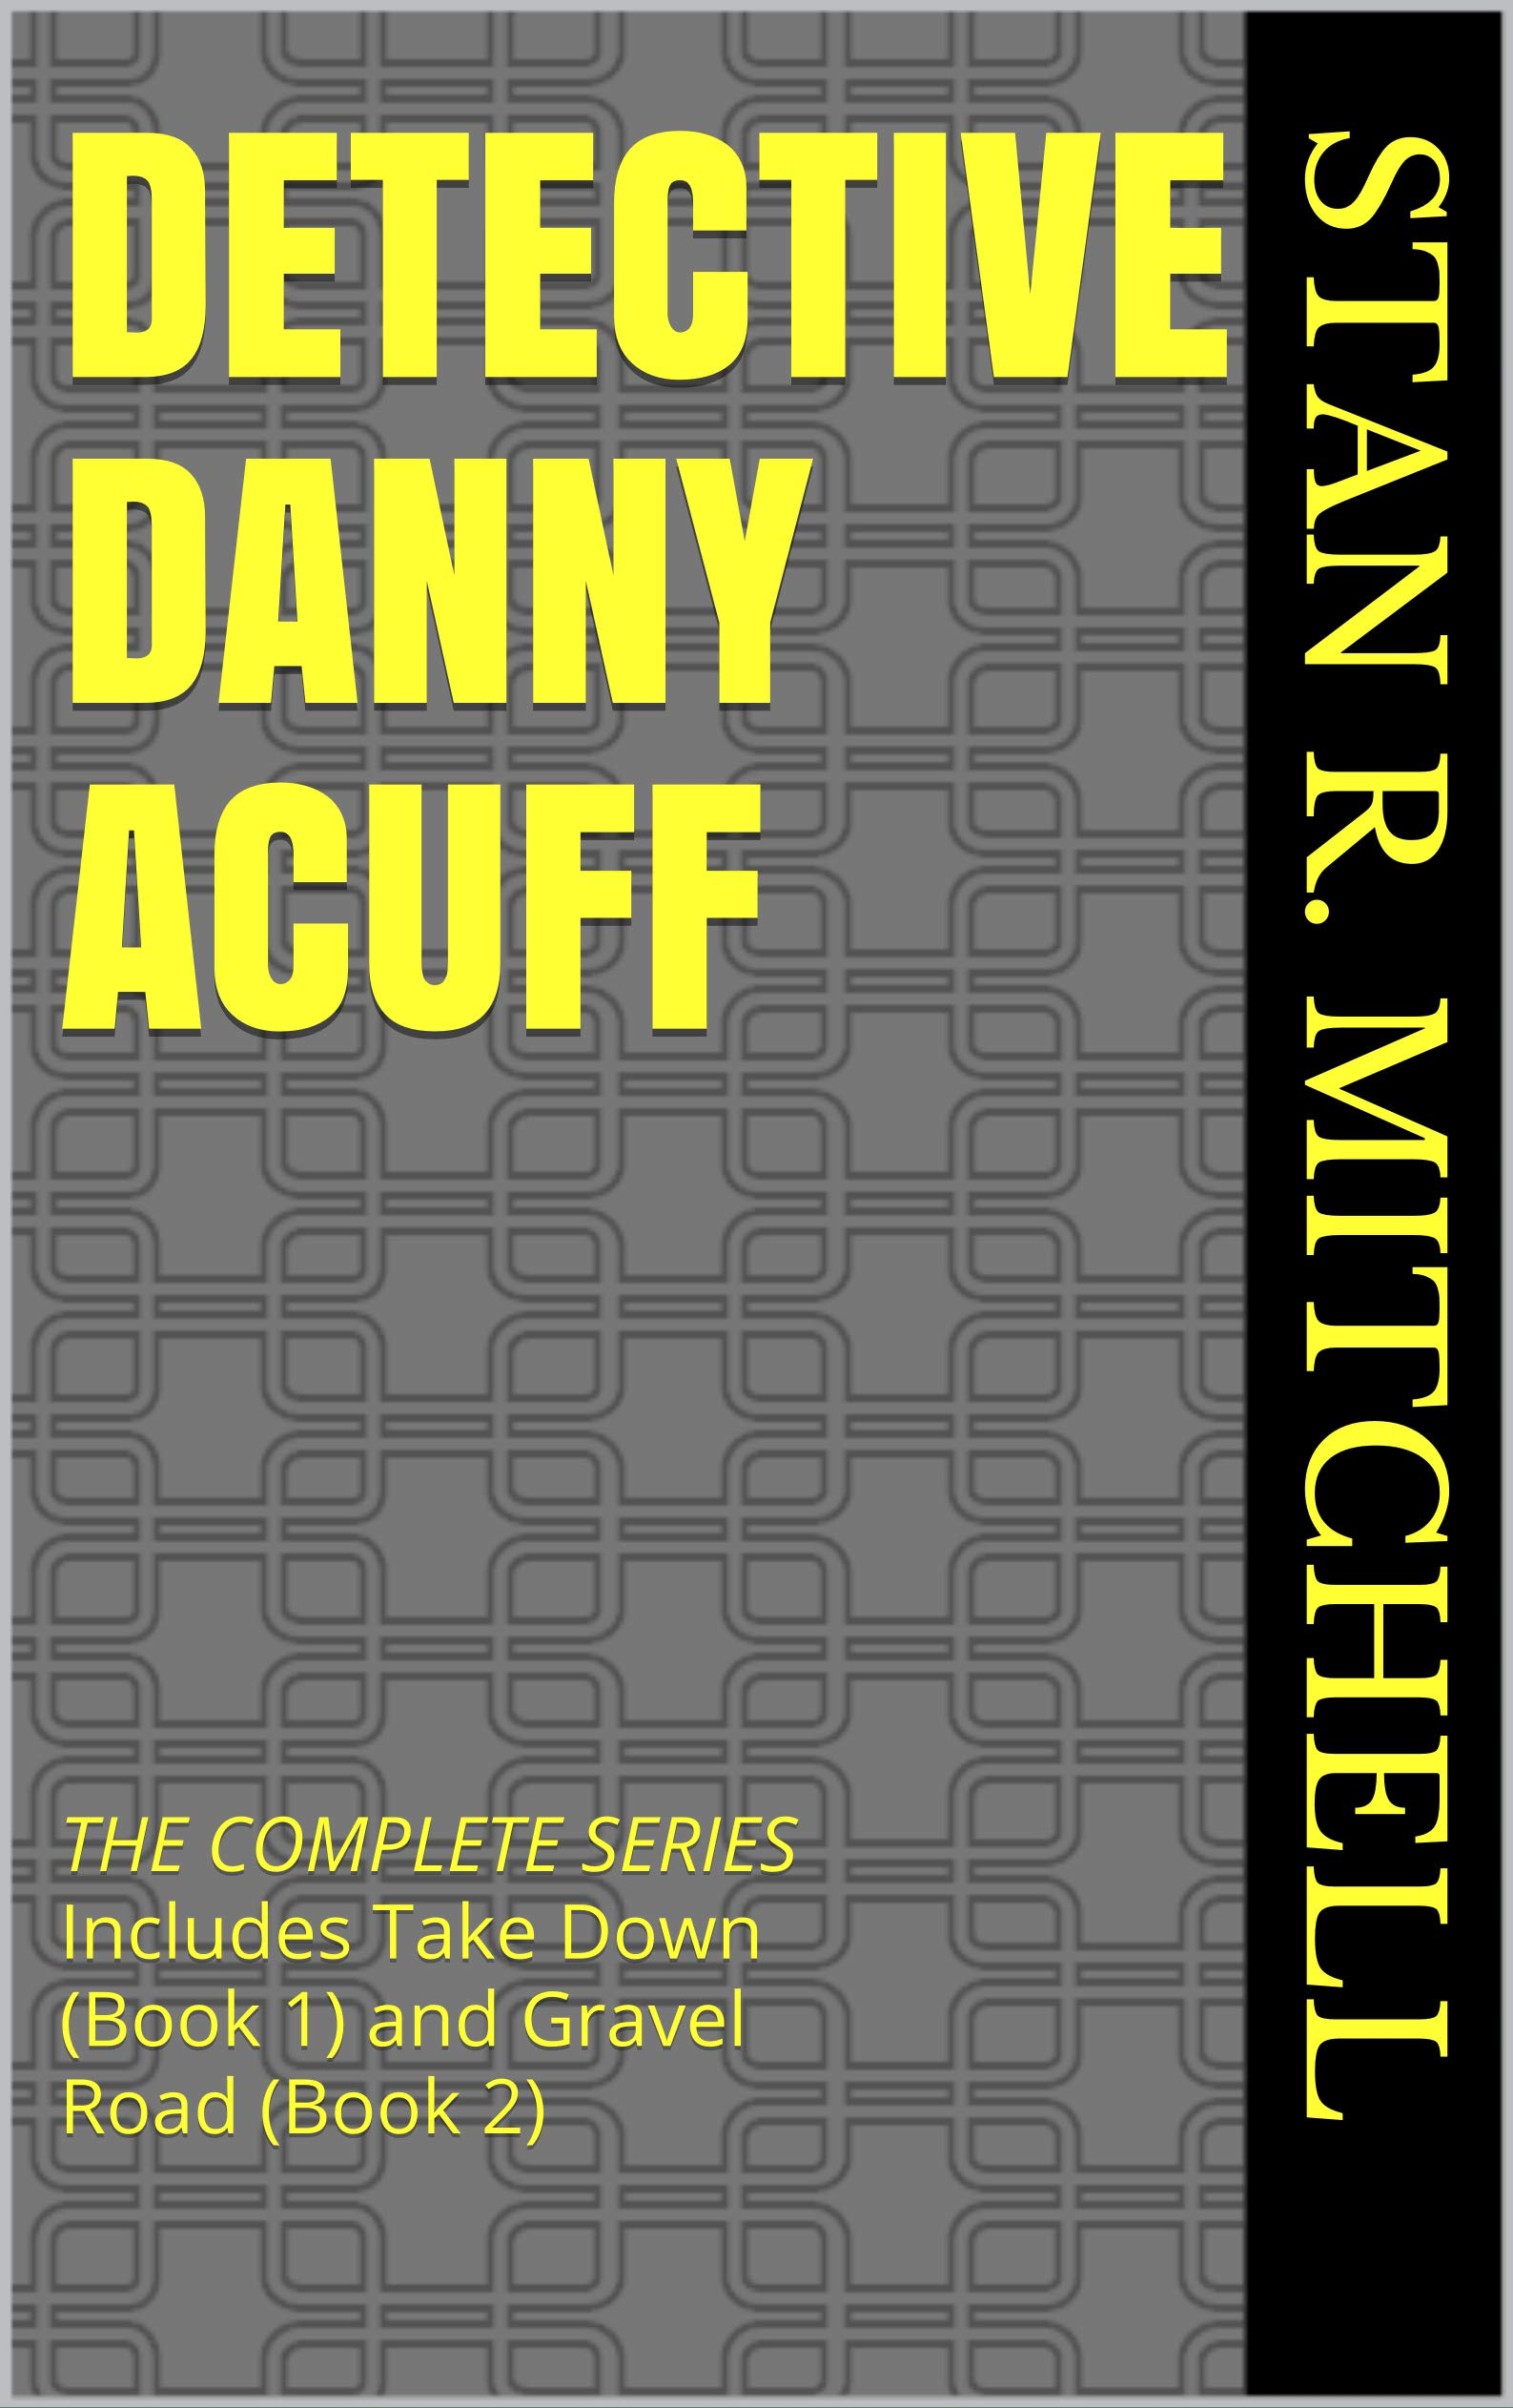 Detective Danny Acuff, the complete series: Includes Take Down (Book 1) and Gravel Road (Book 2)